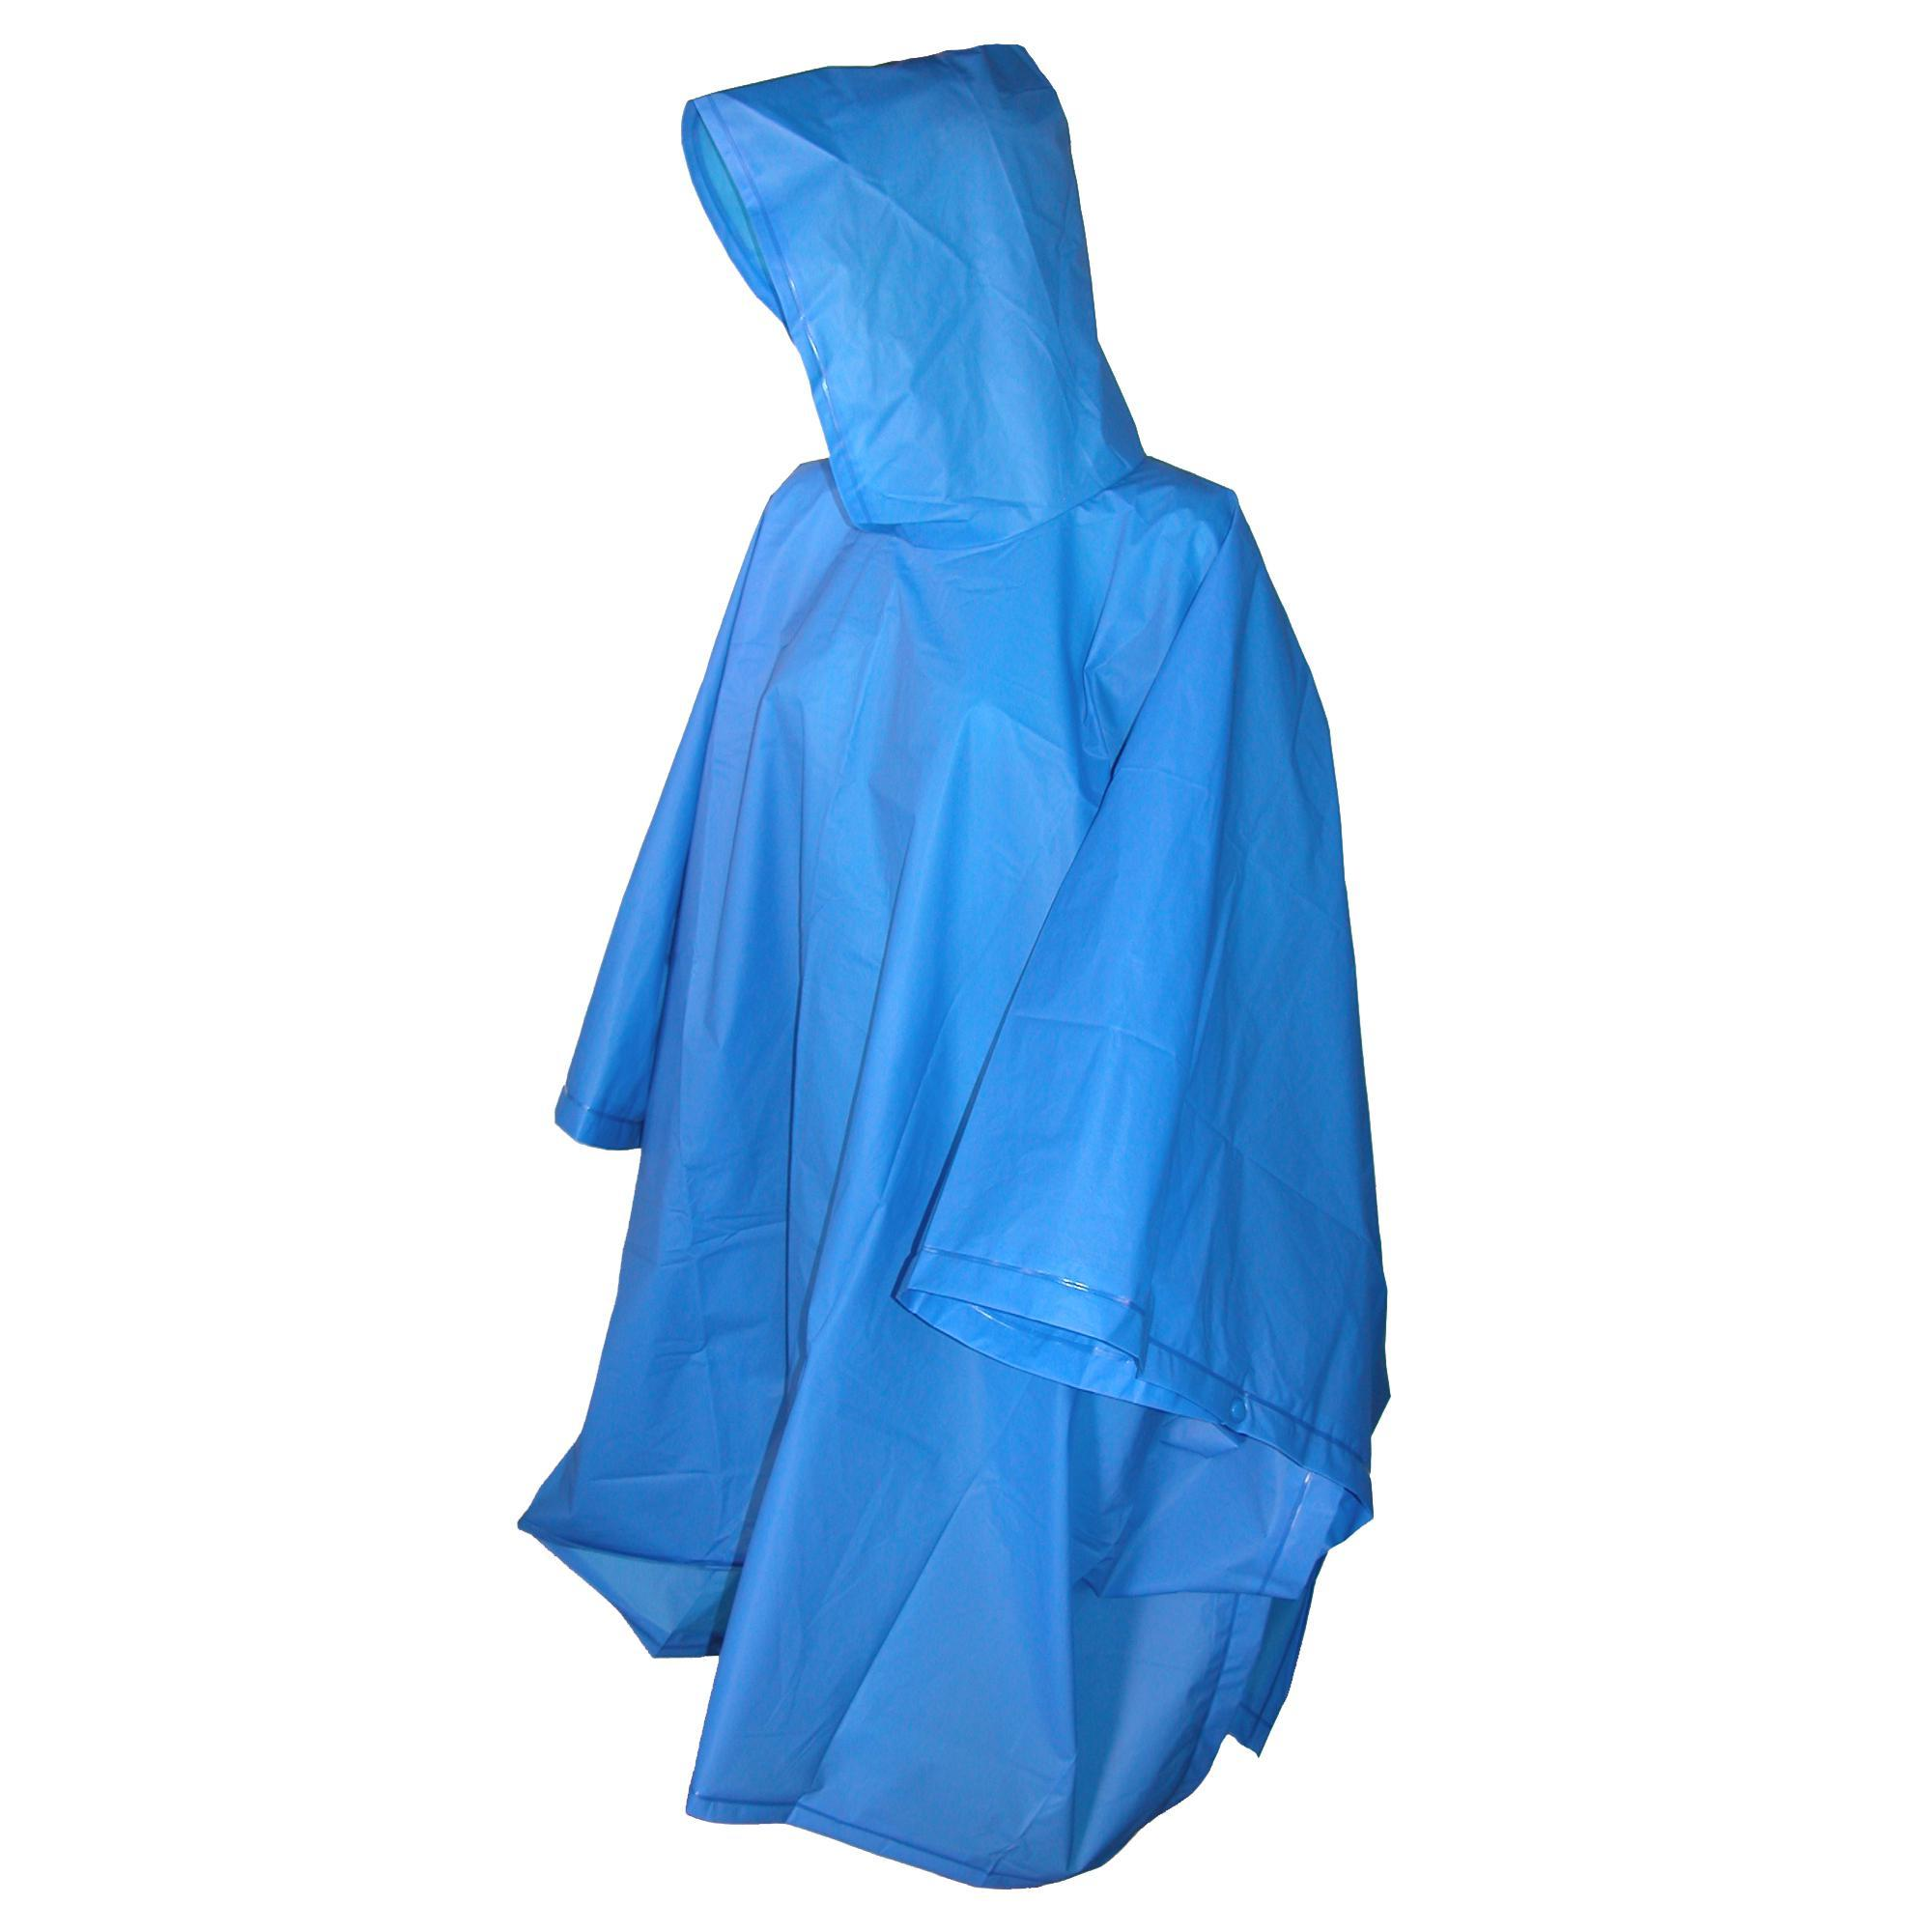 Totes_Hooded_Pullover_Rain_Poncho_with_Side_Snaps_-_Royal_one_size